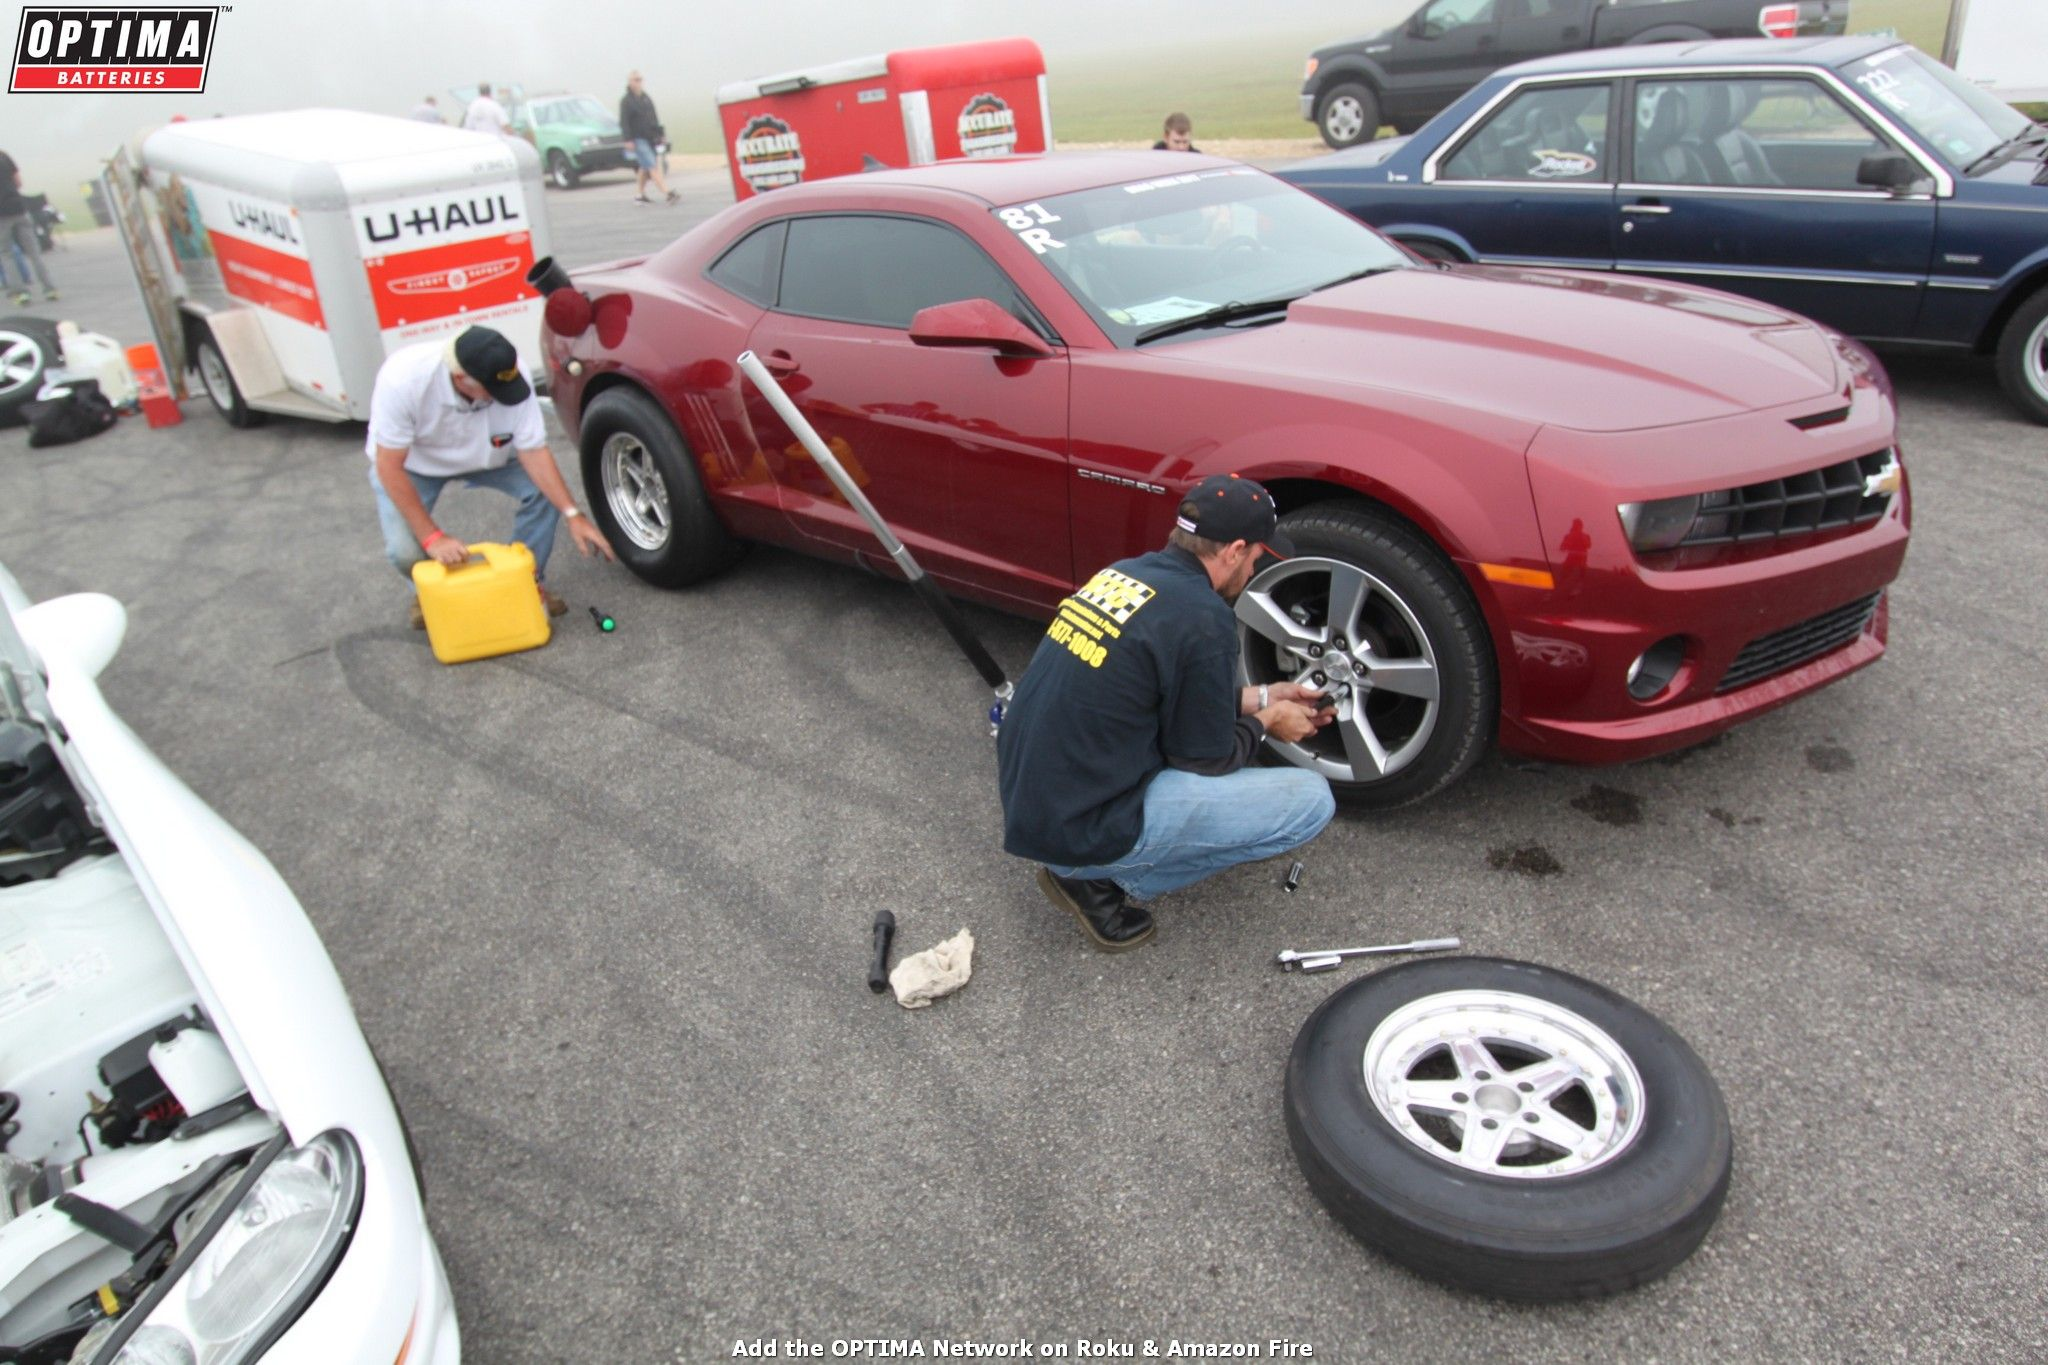 Wayne Willis Swapping Out Tires On His 2010 Chevrolet Camaro At